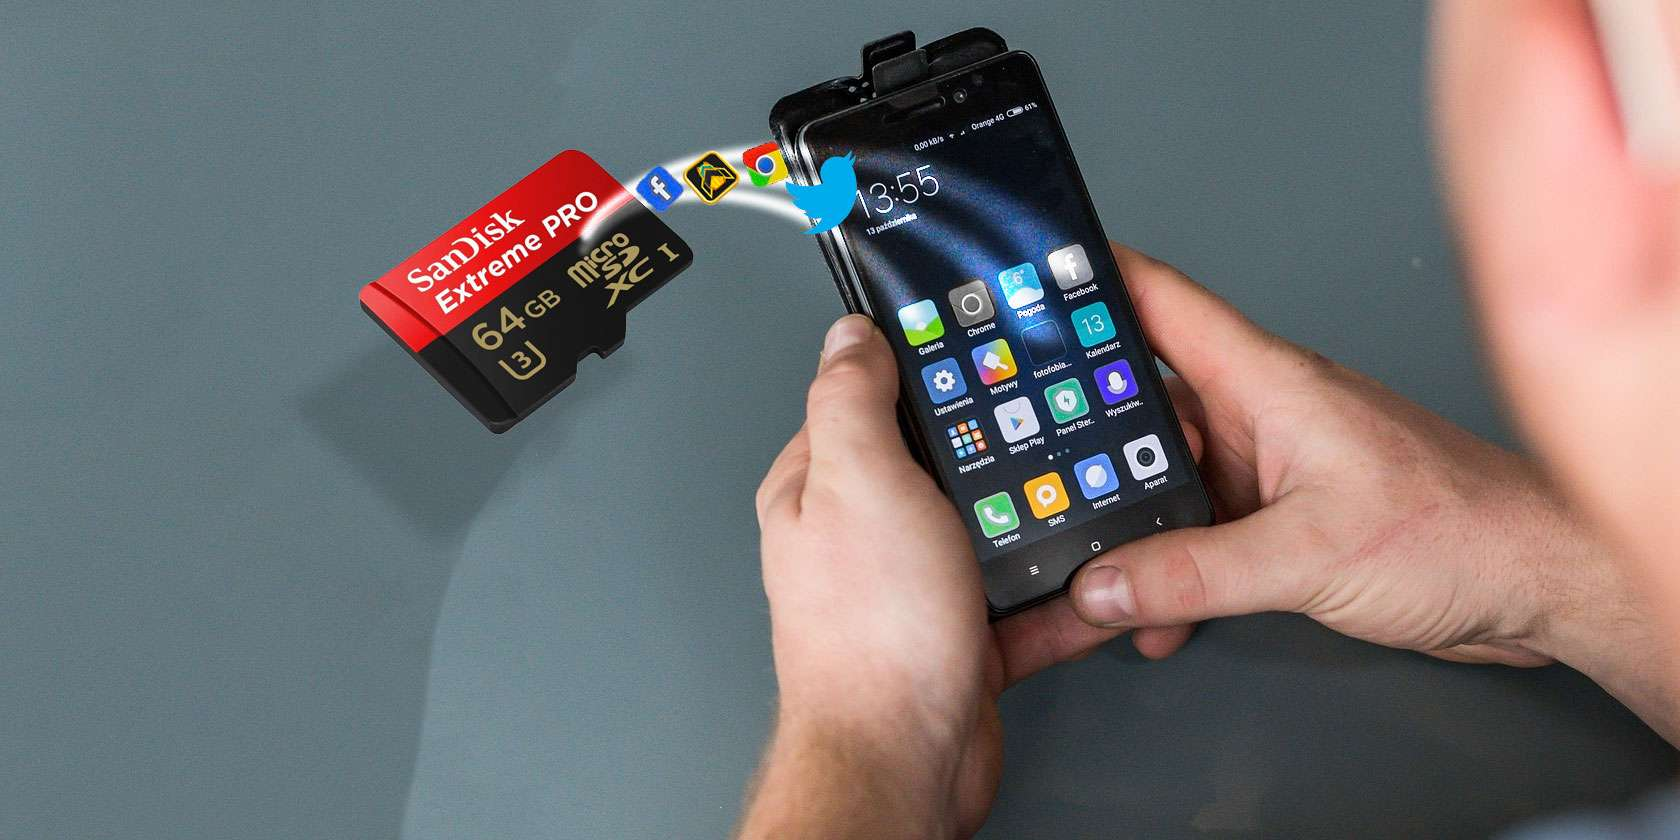 Android a micro SD